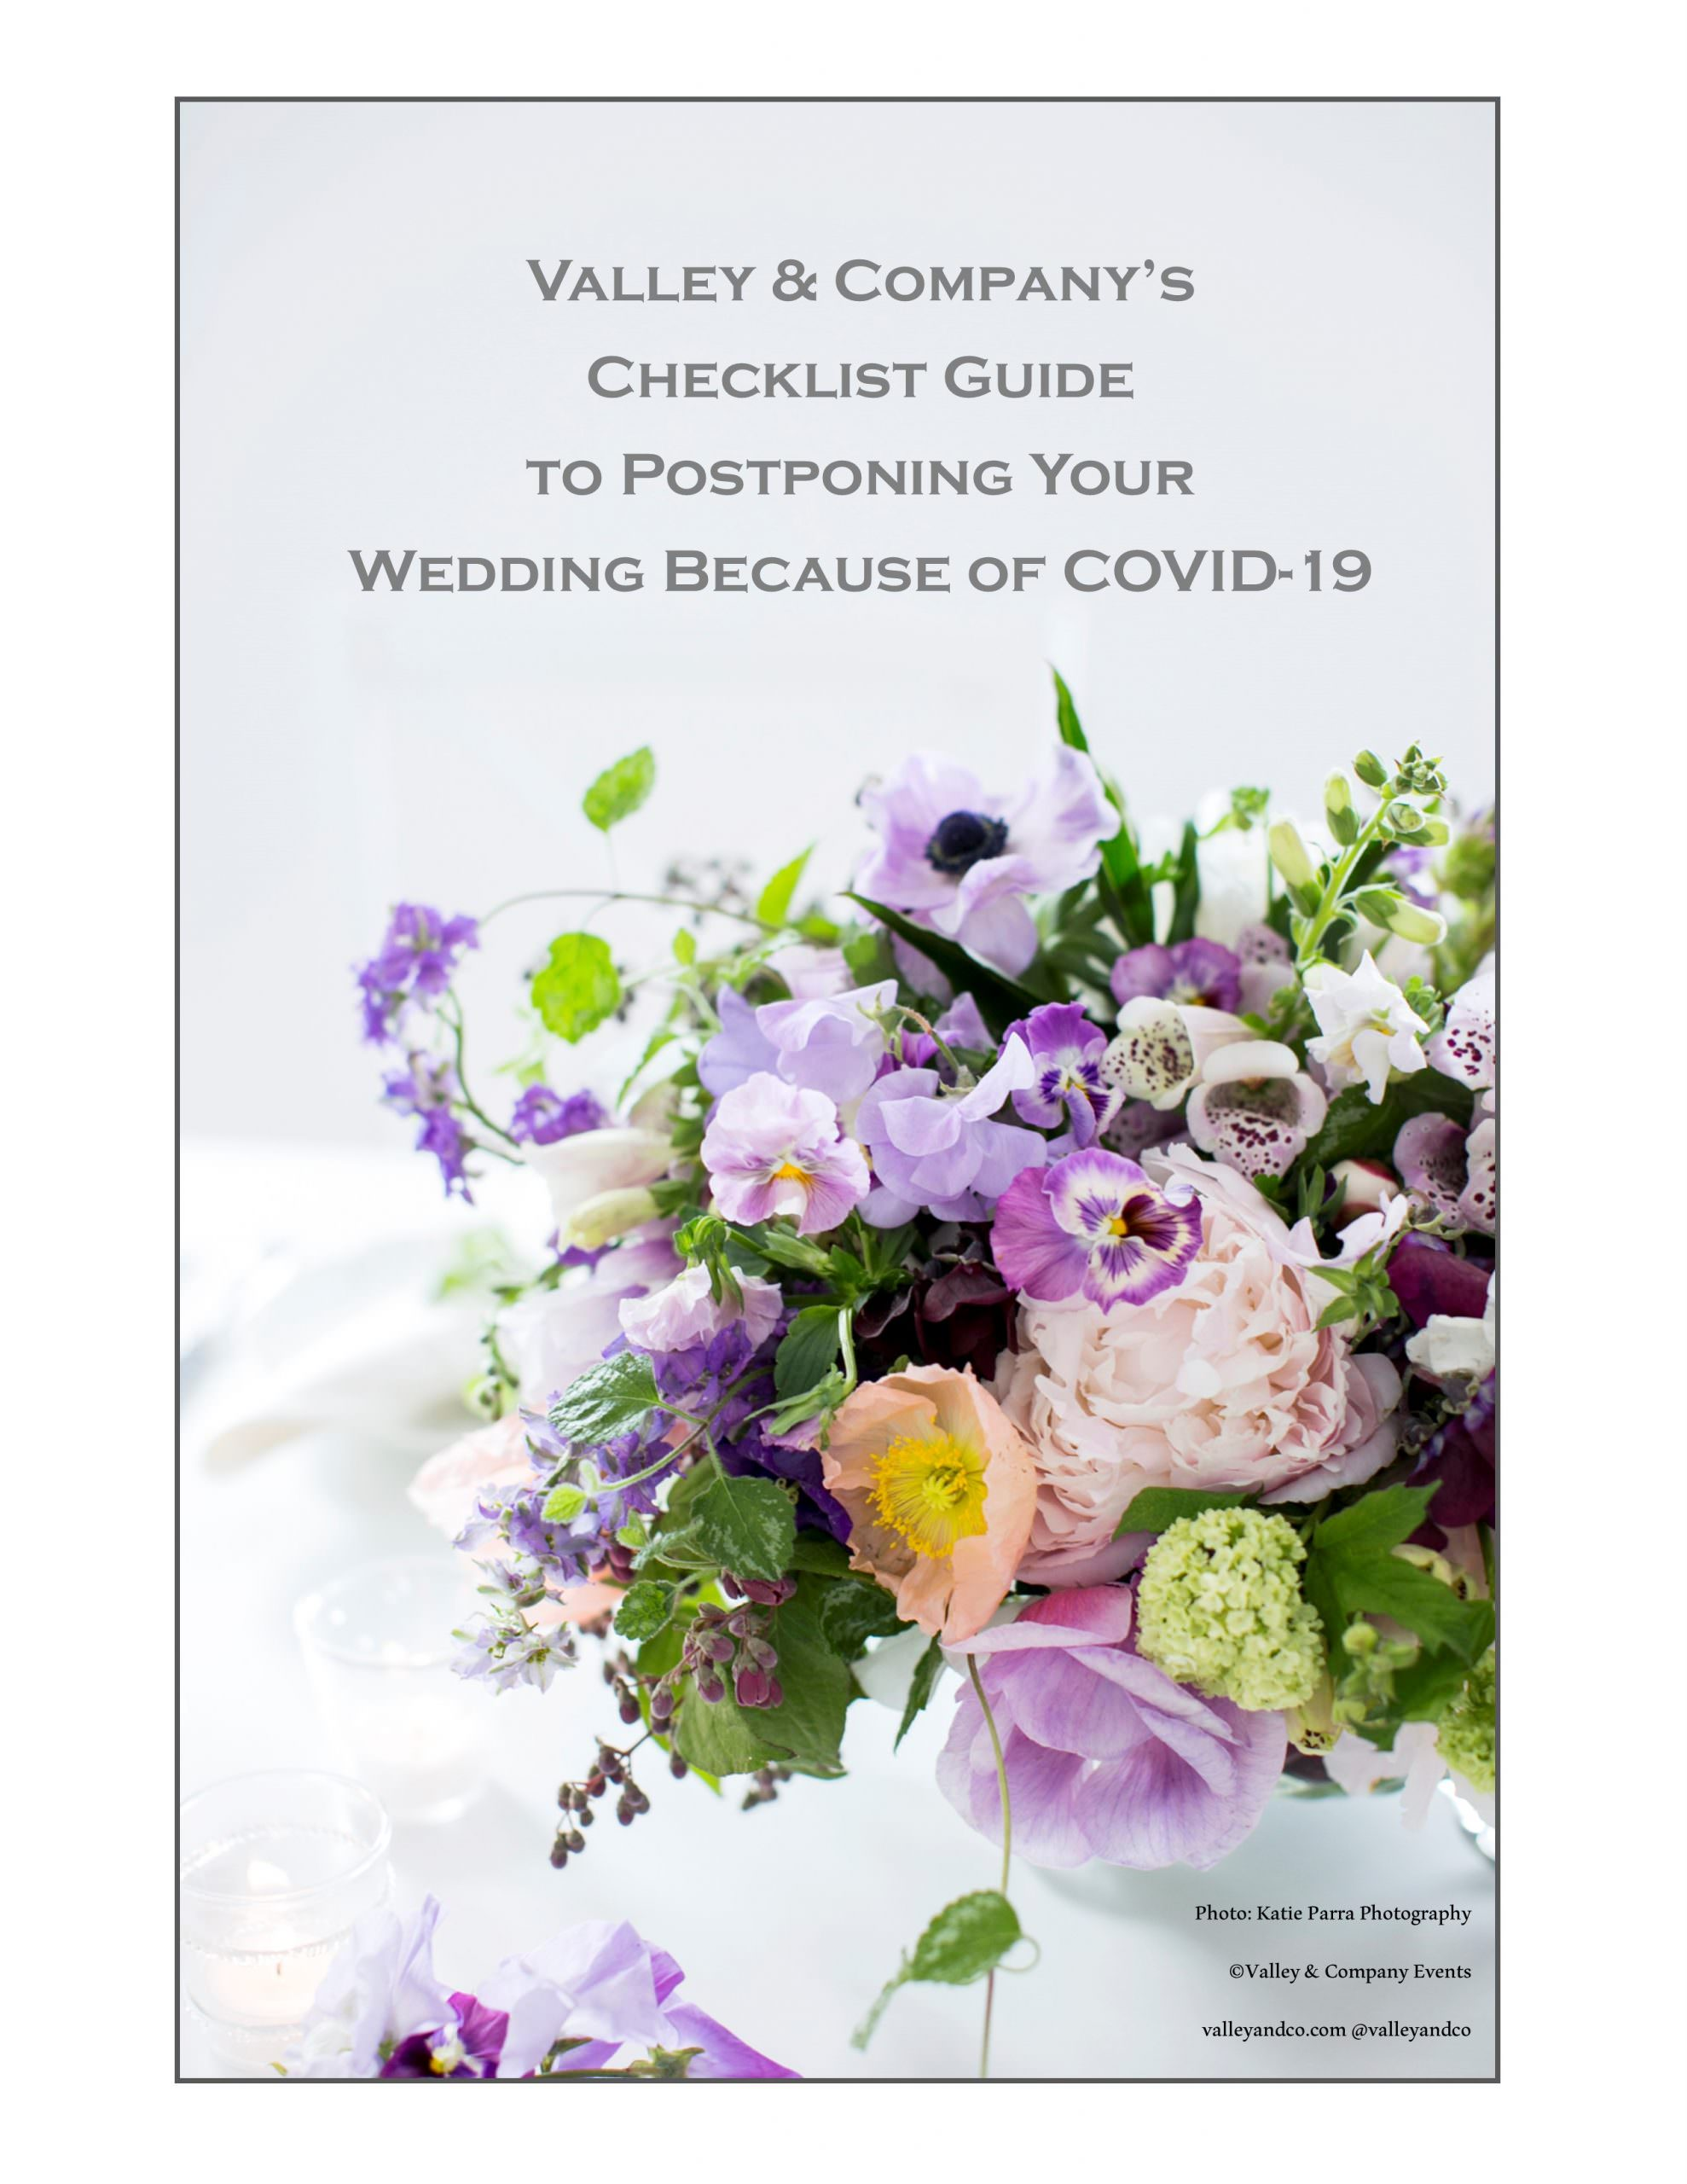 COVID-19 Wedding Planning Postponement Checklist